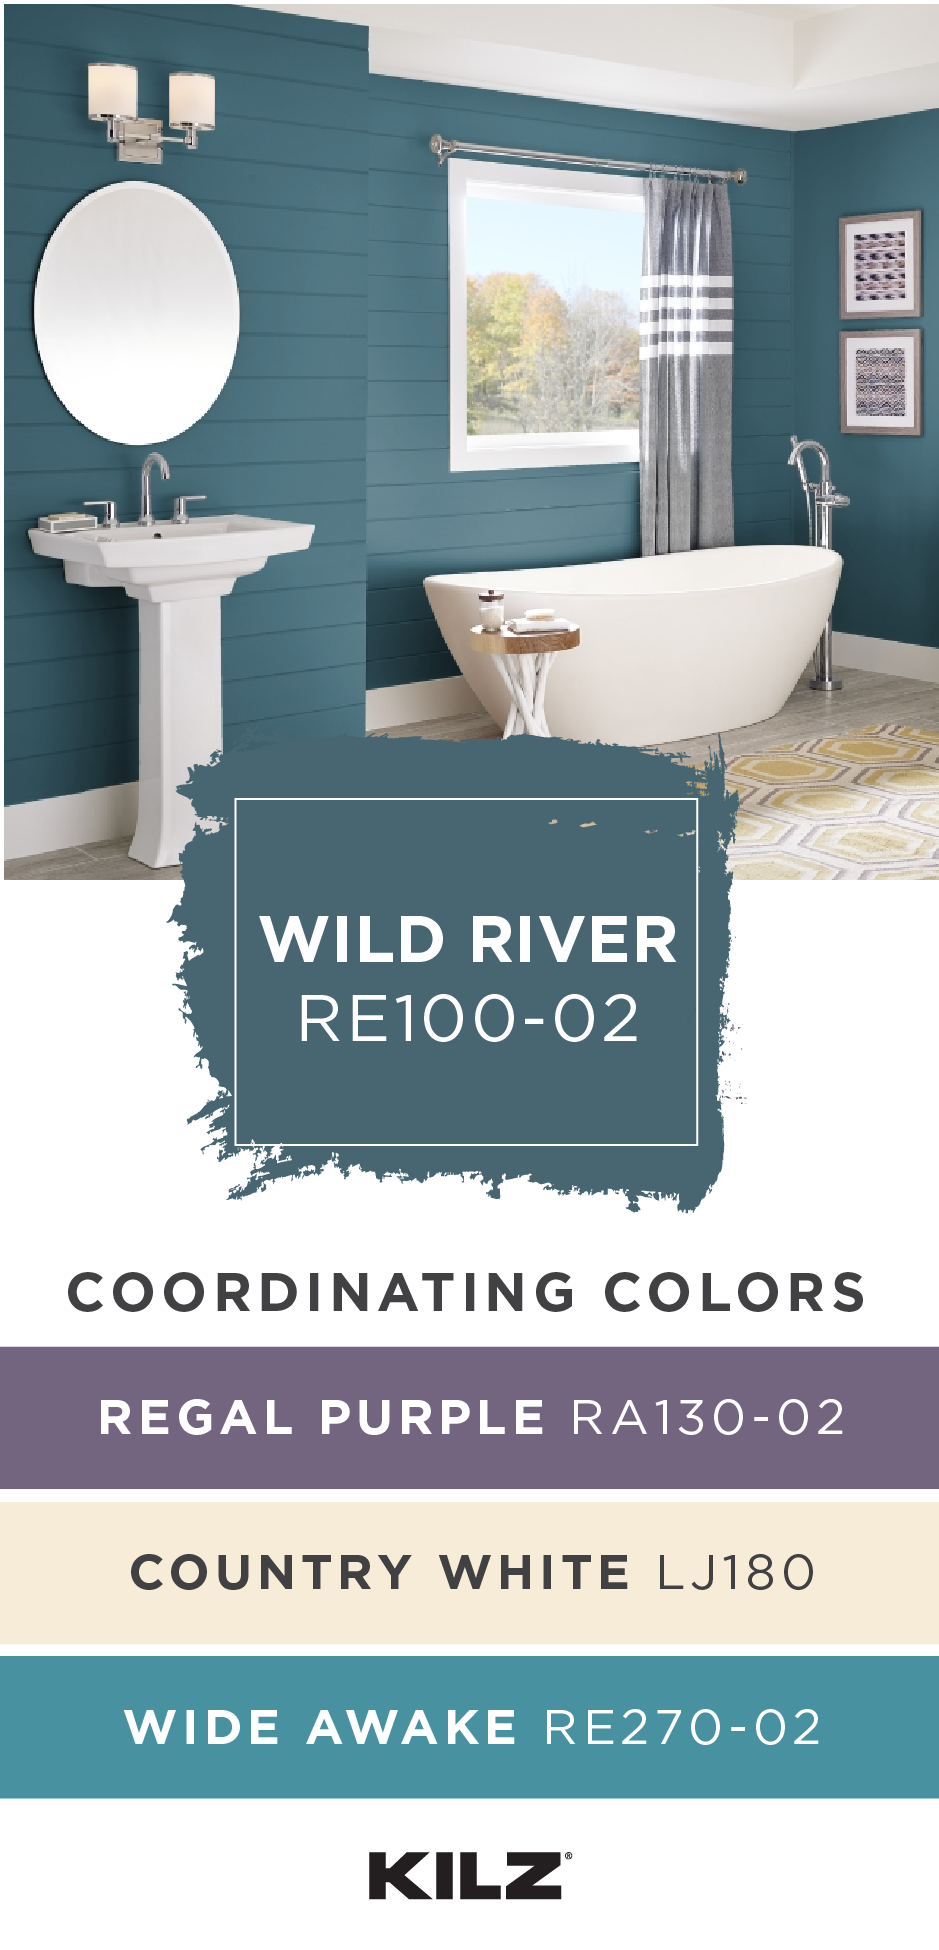 The Dark Blue Hue Of Wild River By Kilz Complete Coat Paint Primer In One Looks Beautiful In T Blue Green Bathrooms Bathroom Colors Blue Rustic Paint Colors